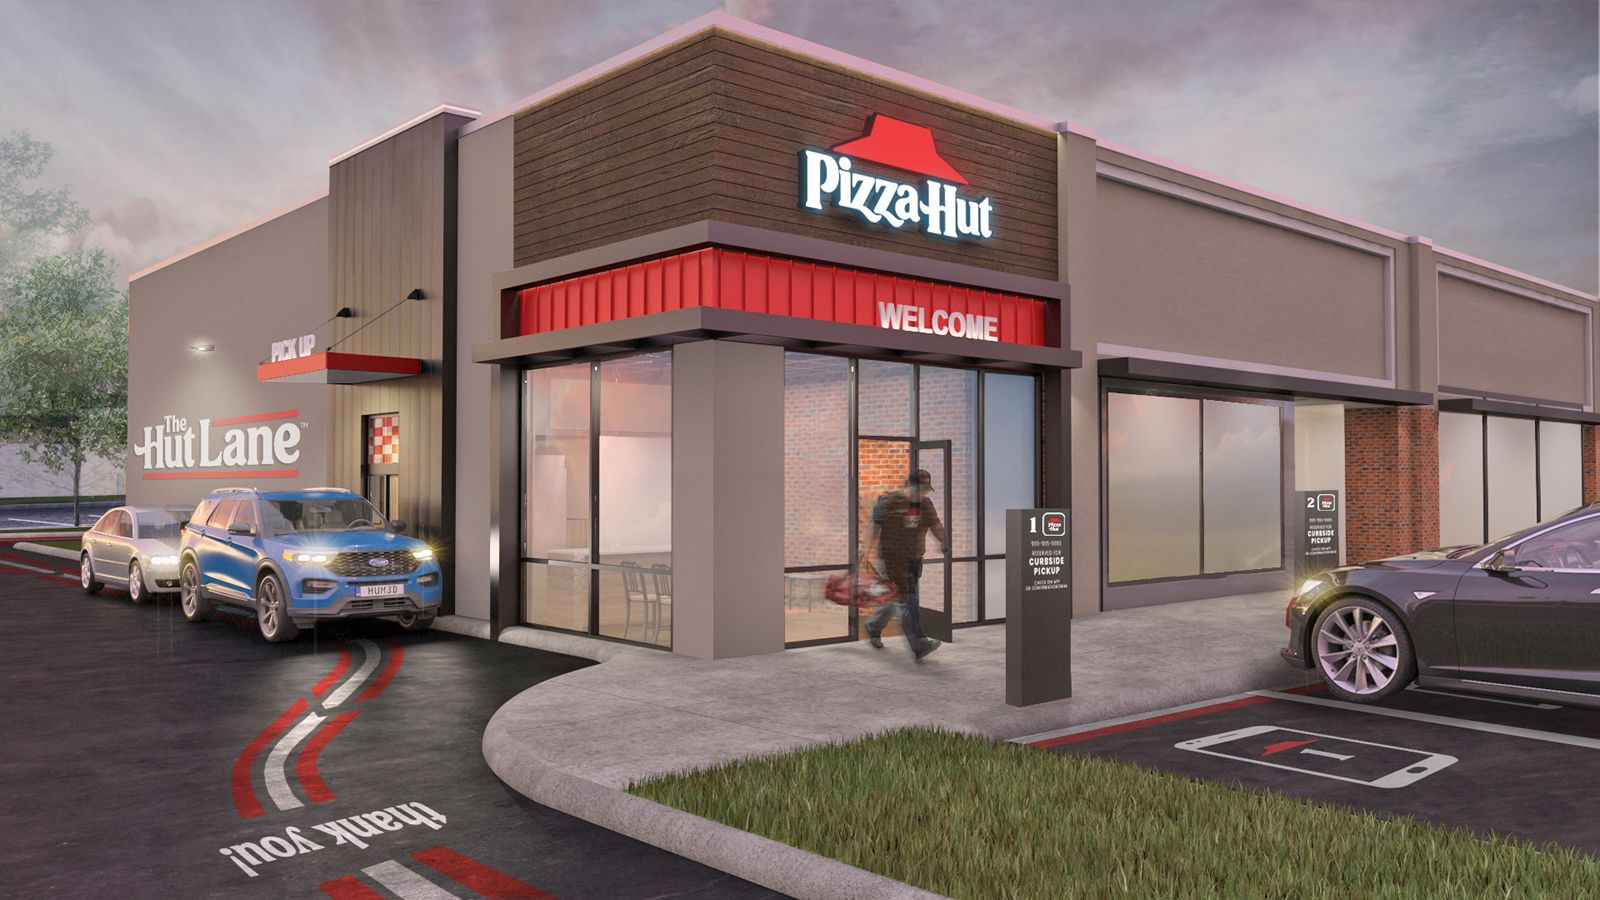 Pizza Hut Launches The Hut Lane -- A Digital-First Carryout Option